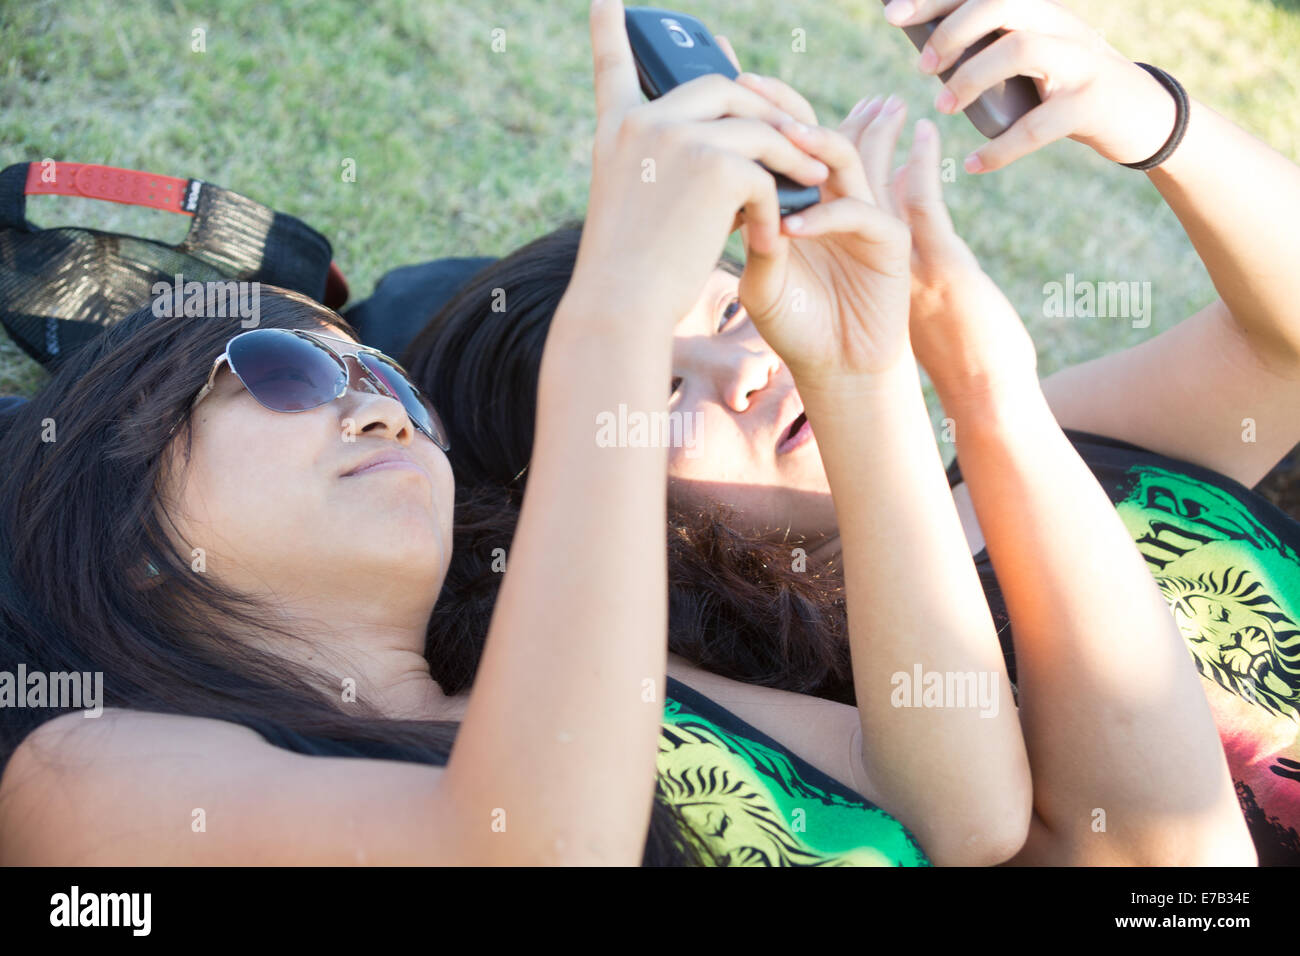 Two 20s Asian women lying on the grass looking at their cell phones - Stock Image